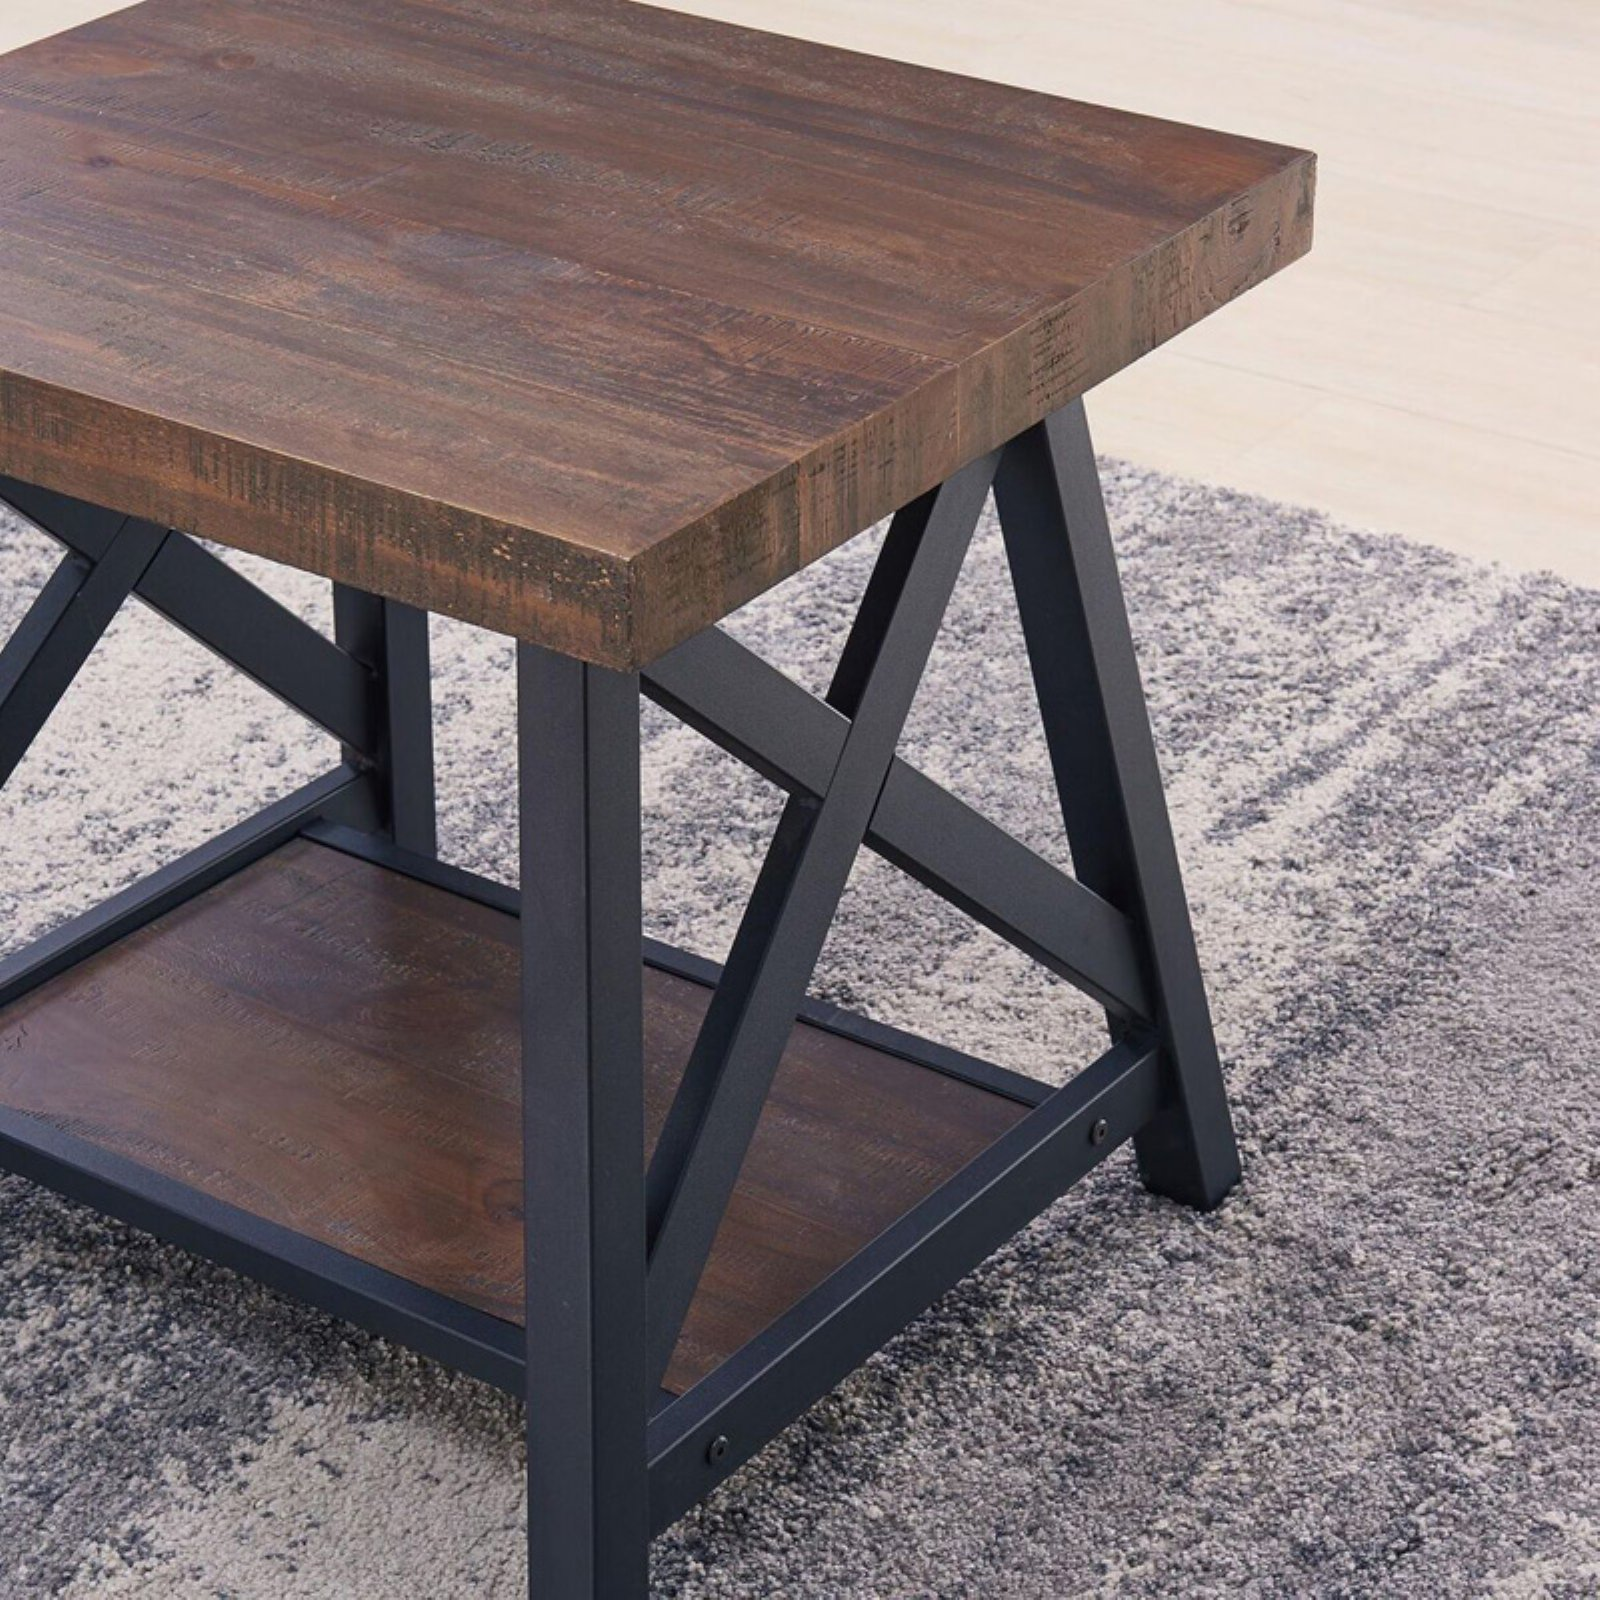 nspire rustic modern tier pine veneer and metal accent table detail gray unfinished wood threshold rugs slim white console piece nesting set sheesham farm style dining room home